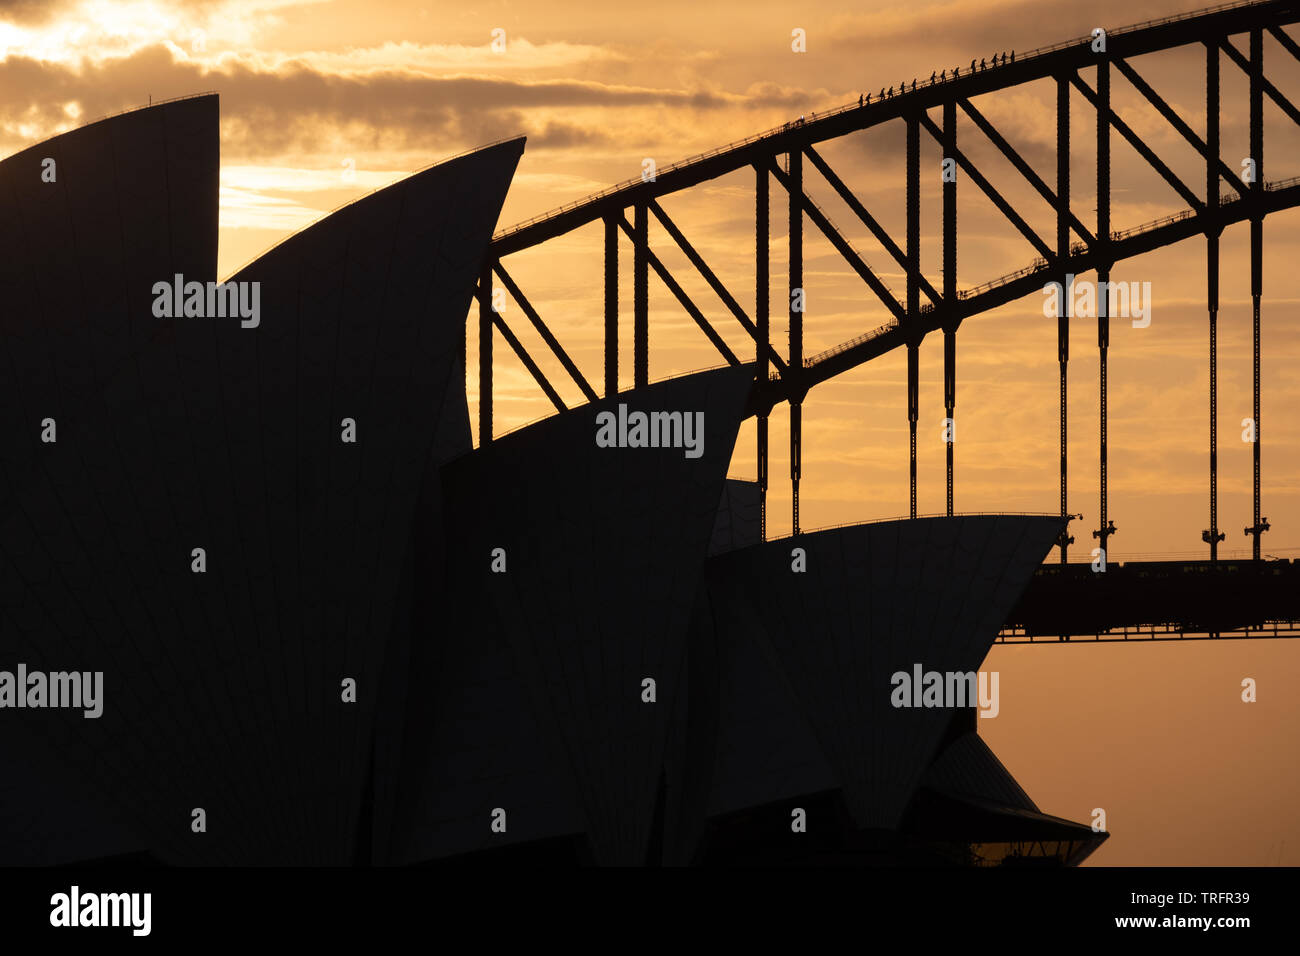 The Sydney Opera House and Harbour Bridge in silhouette with a orange evening sky. Bridge walkers can be seen climbing on the bridge. - Stock Image